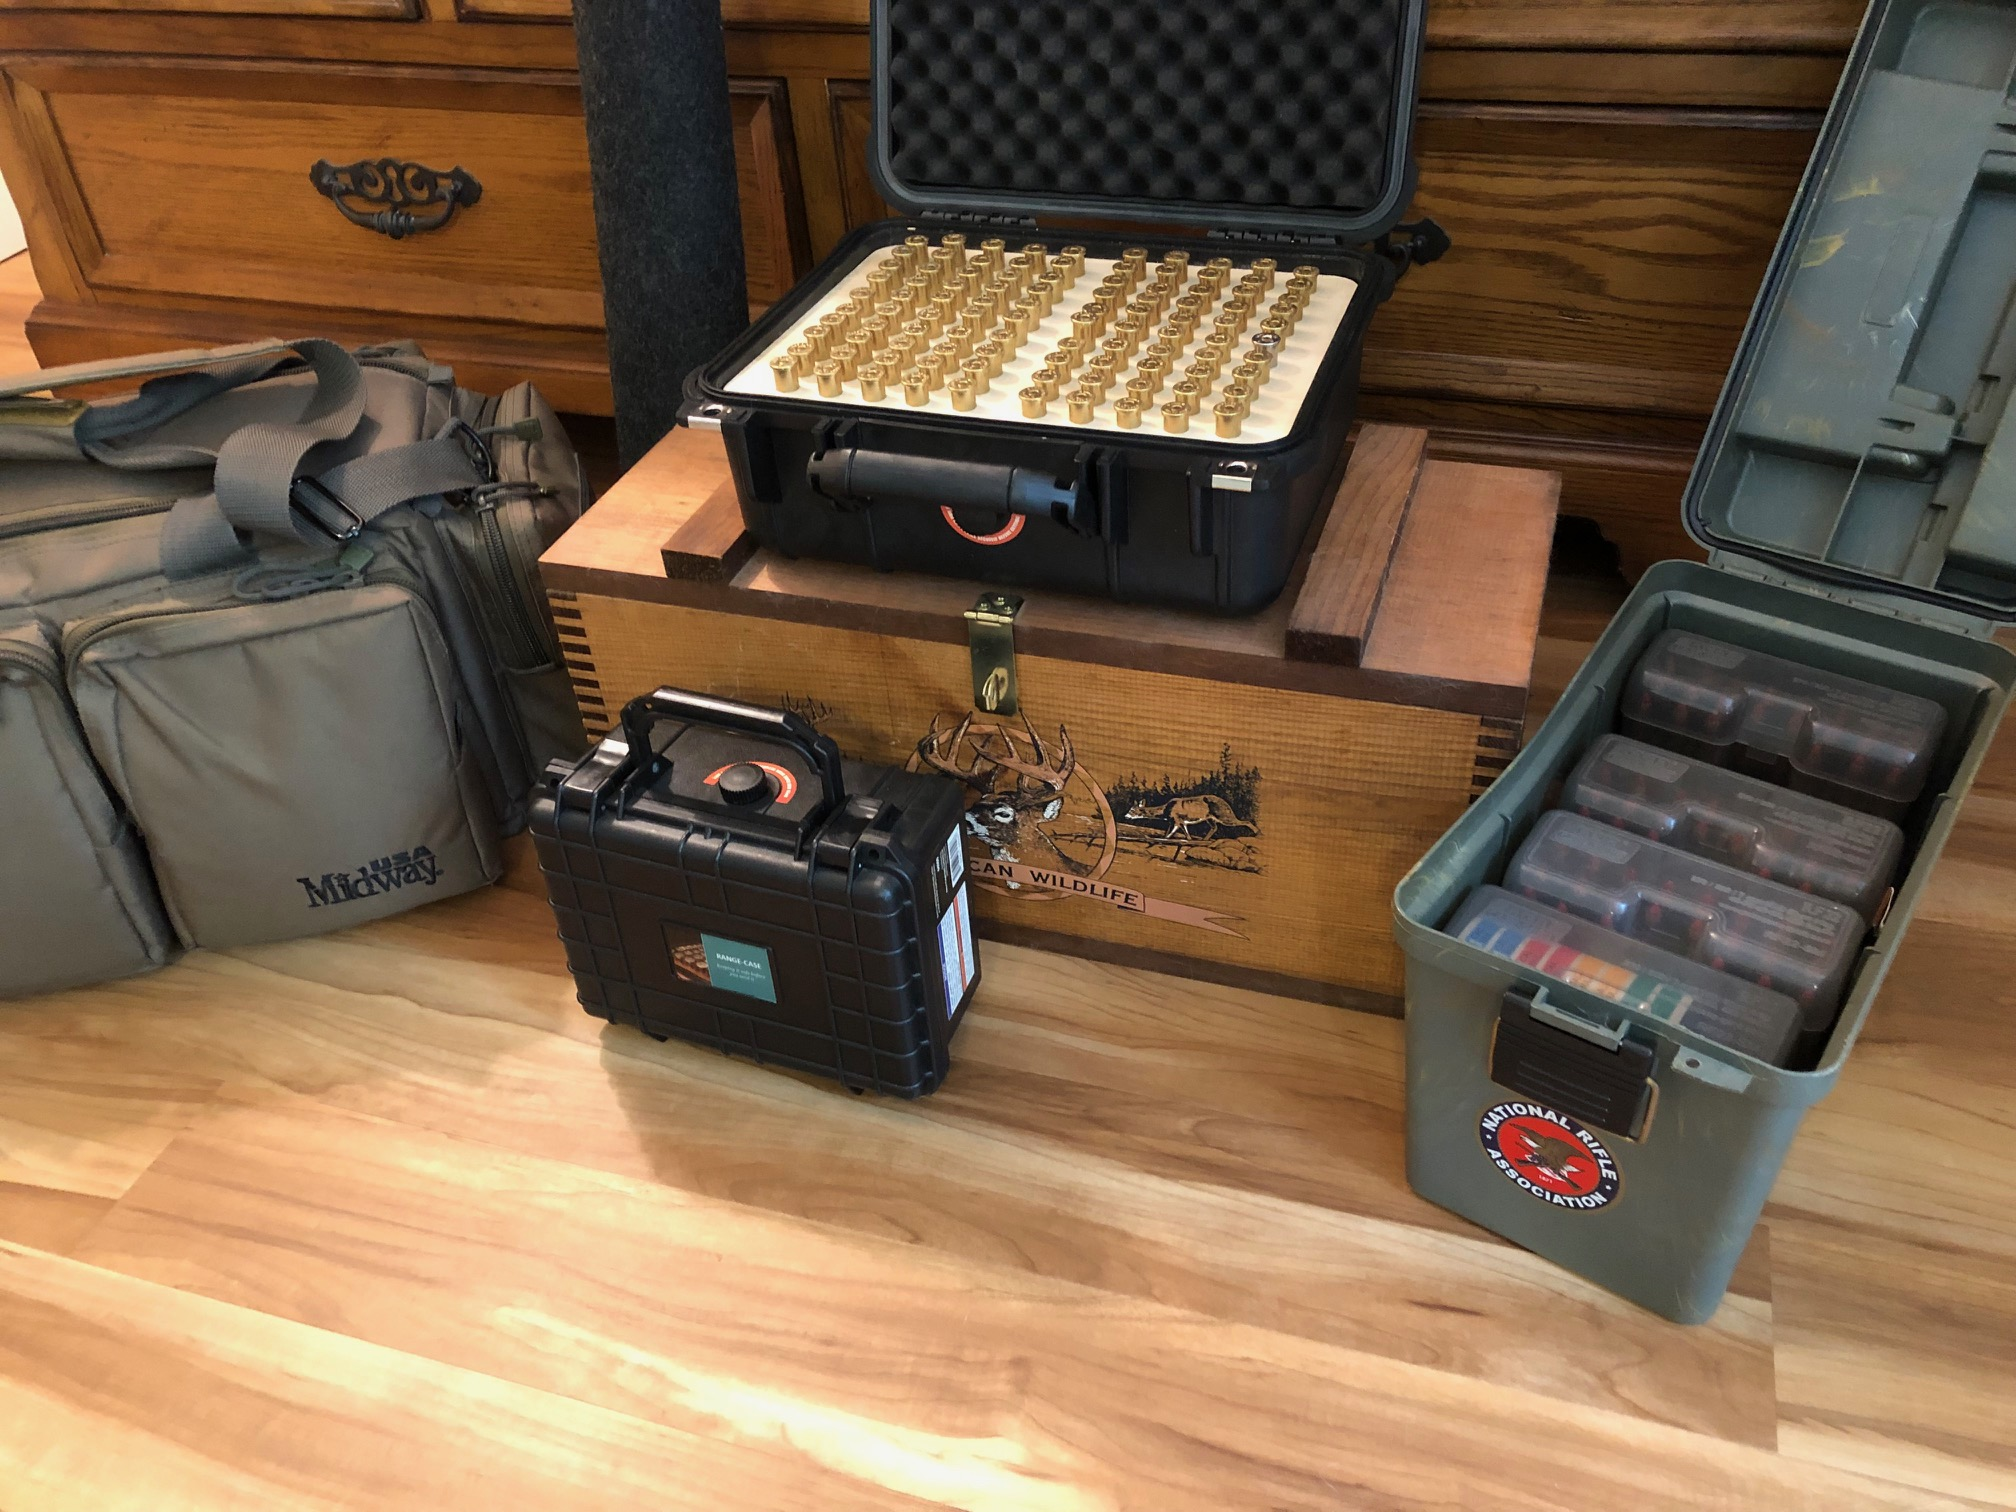 A group pic of Range Gear the Author uses